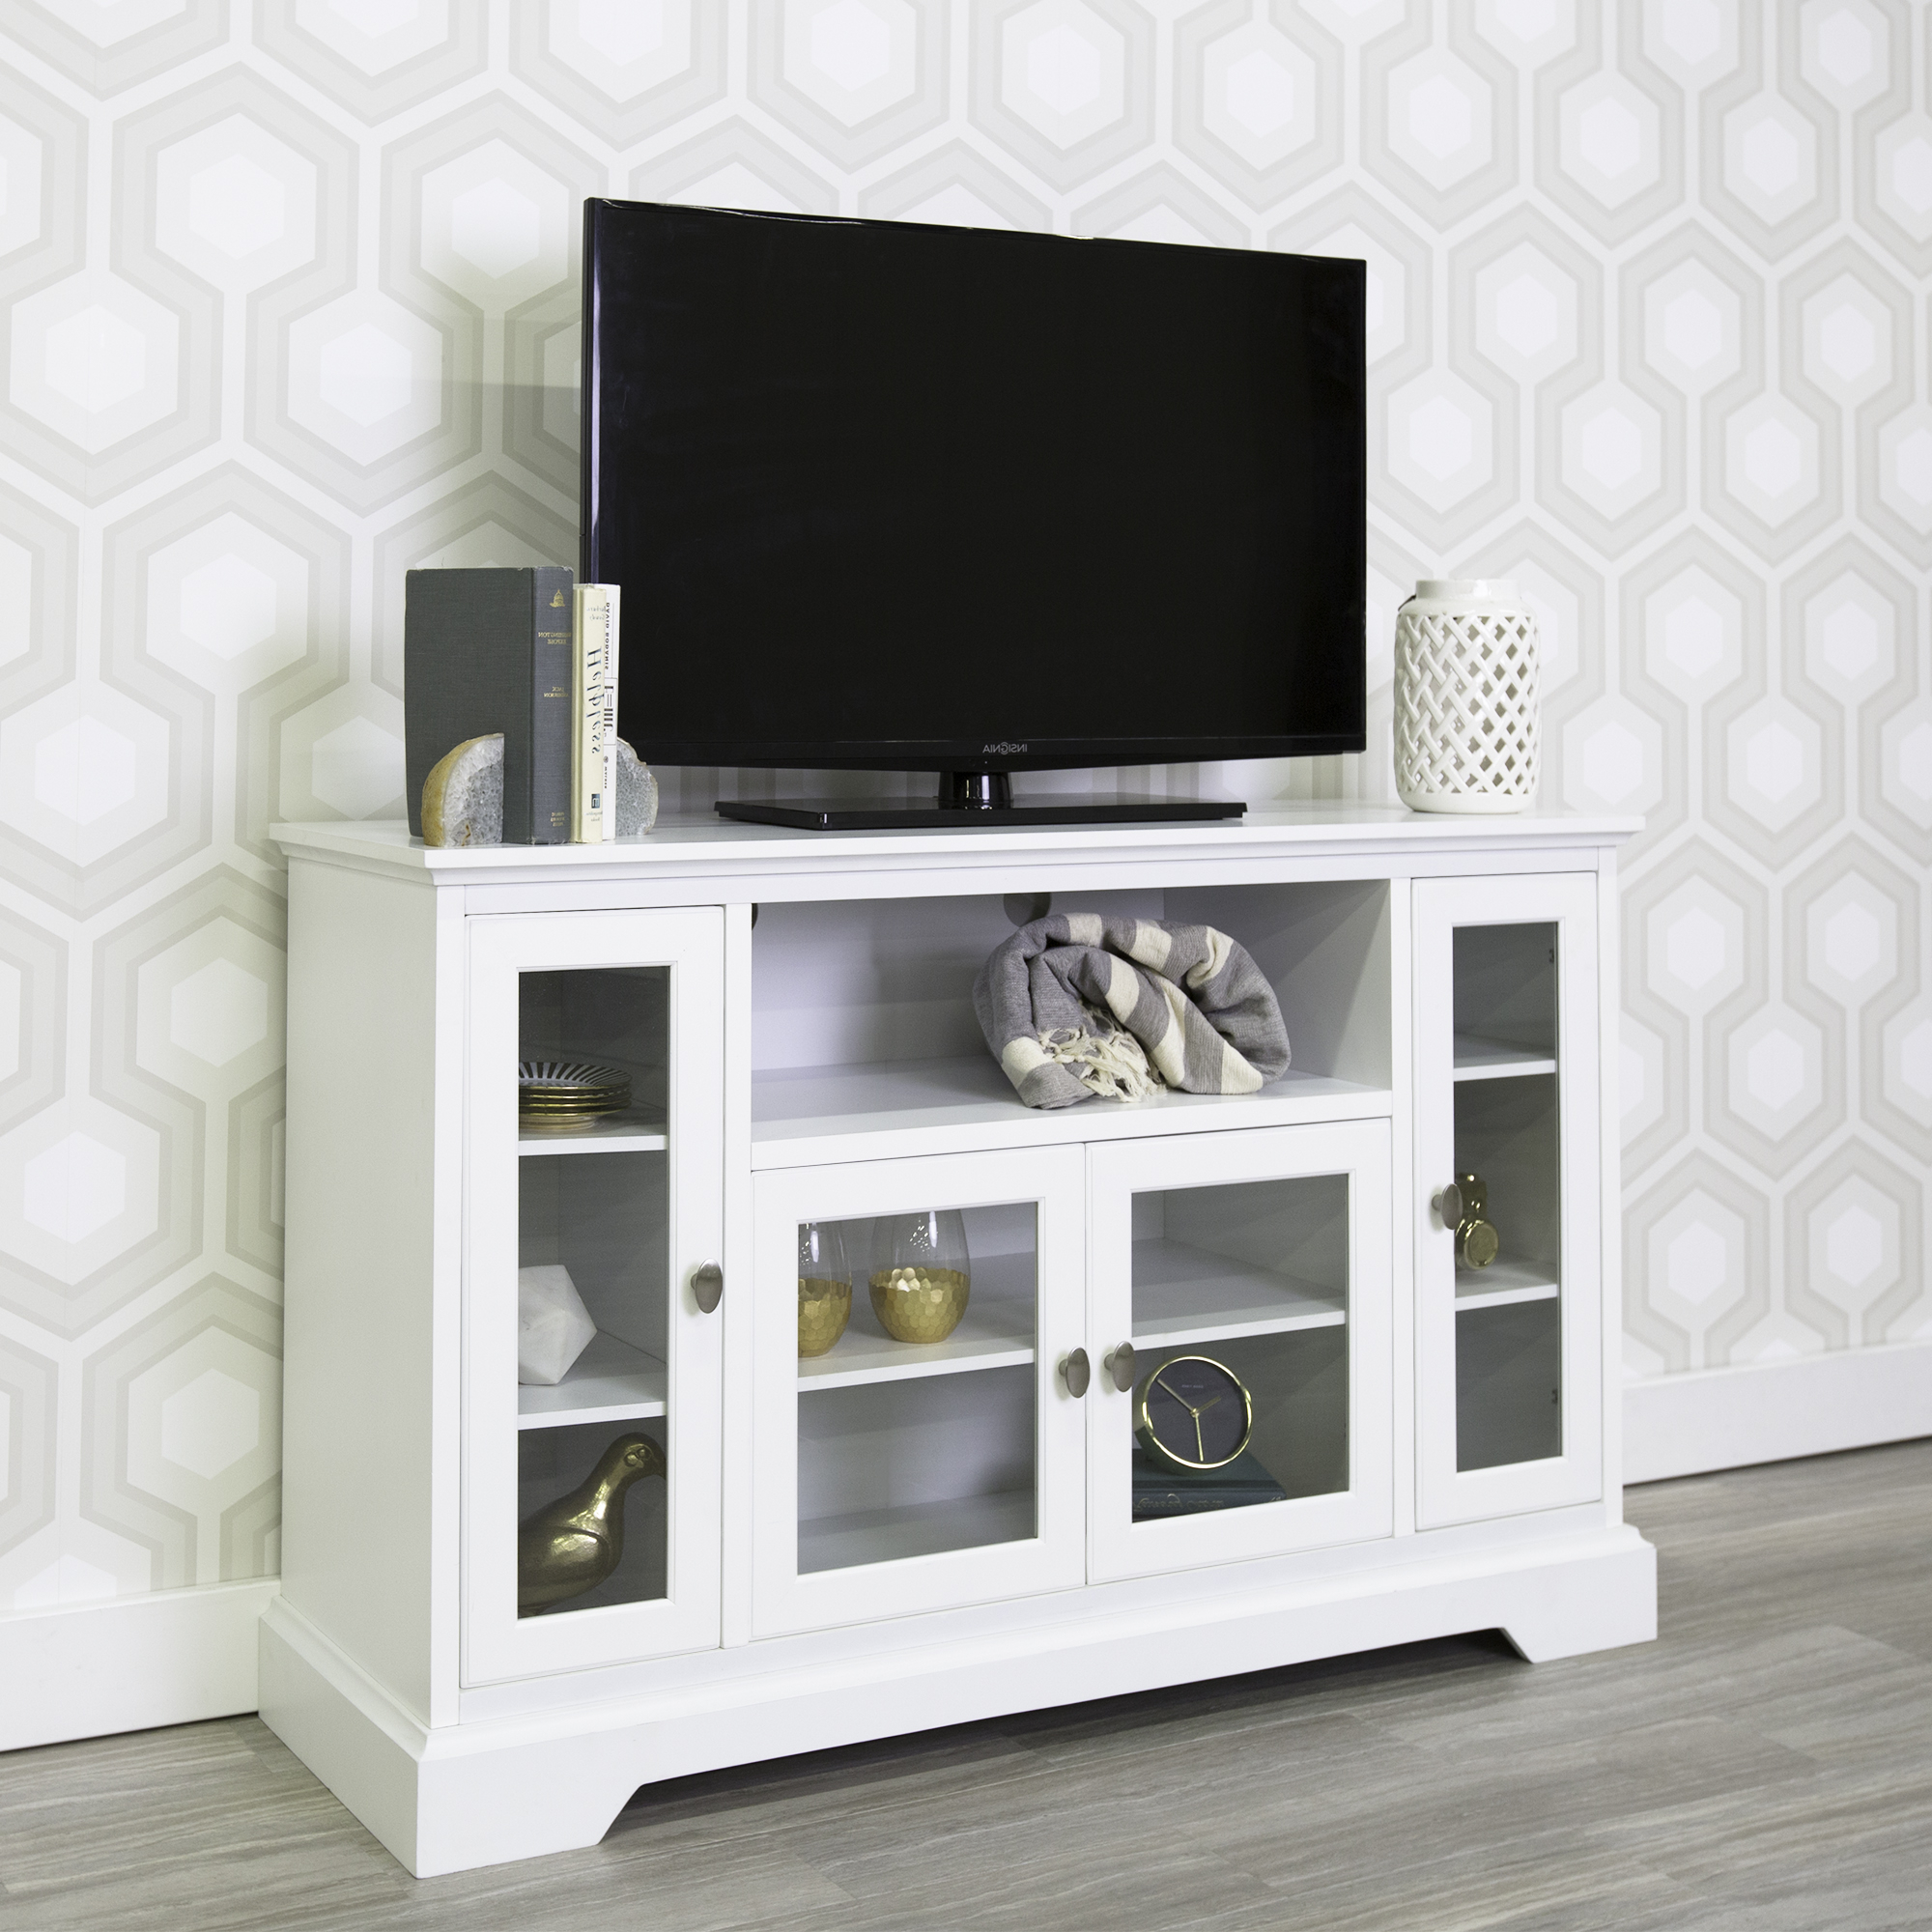 """Well Liked Walker Edison Highboy Style Wood Media Storage Tv Stand Inside Evelynn Tv Stands For Tvs Up To 60"""" (View 13 of 25)"""